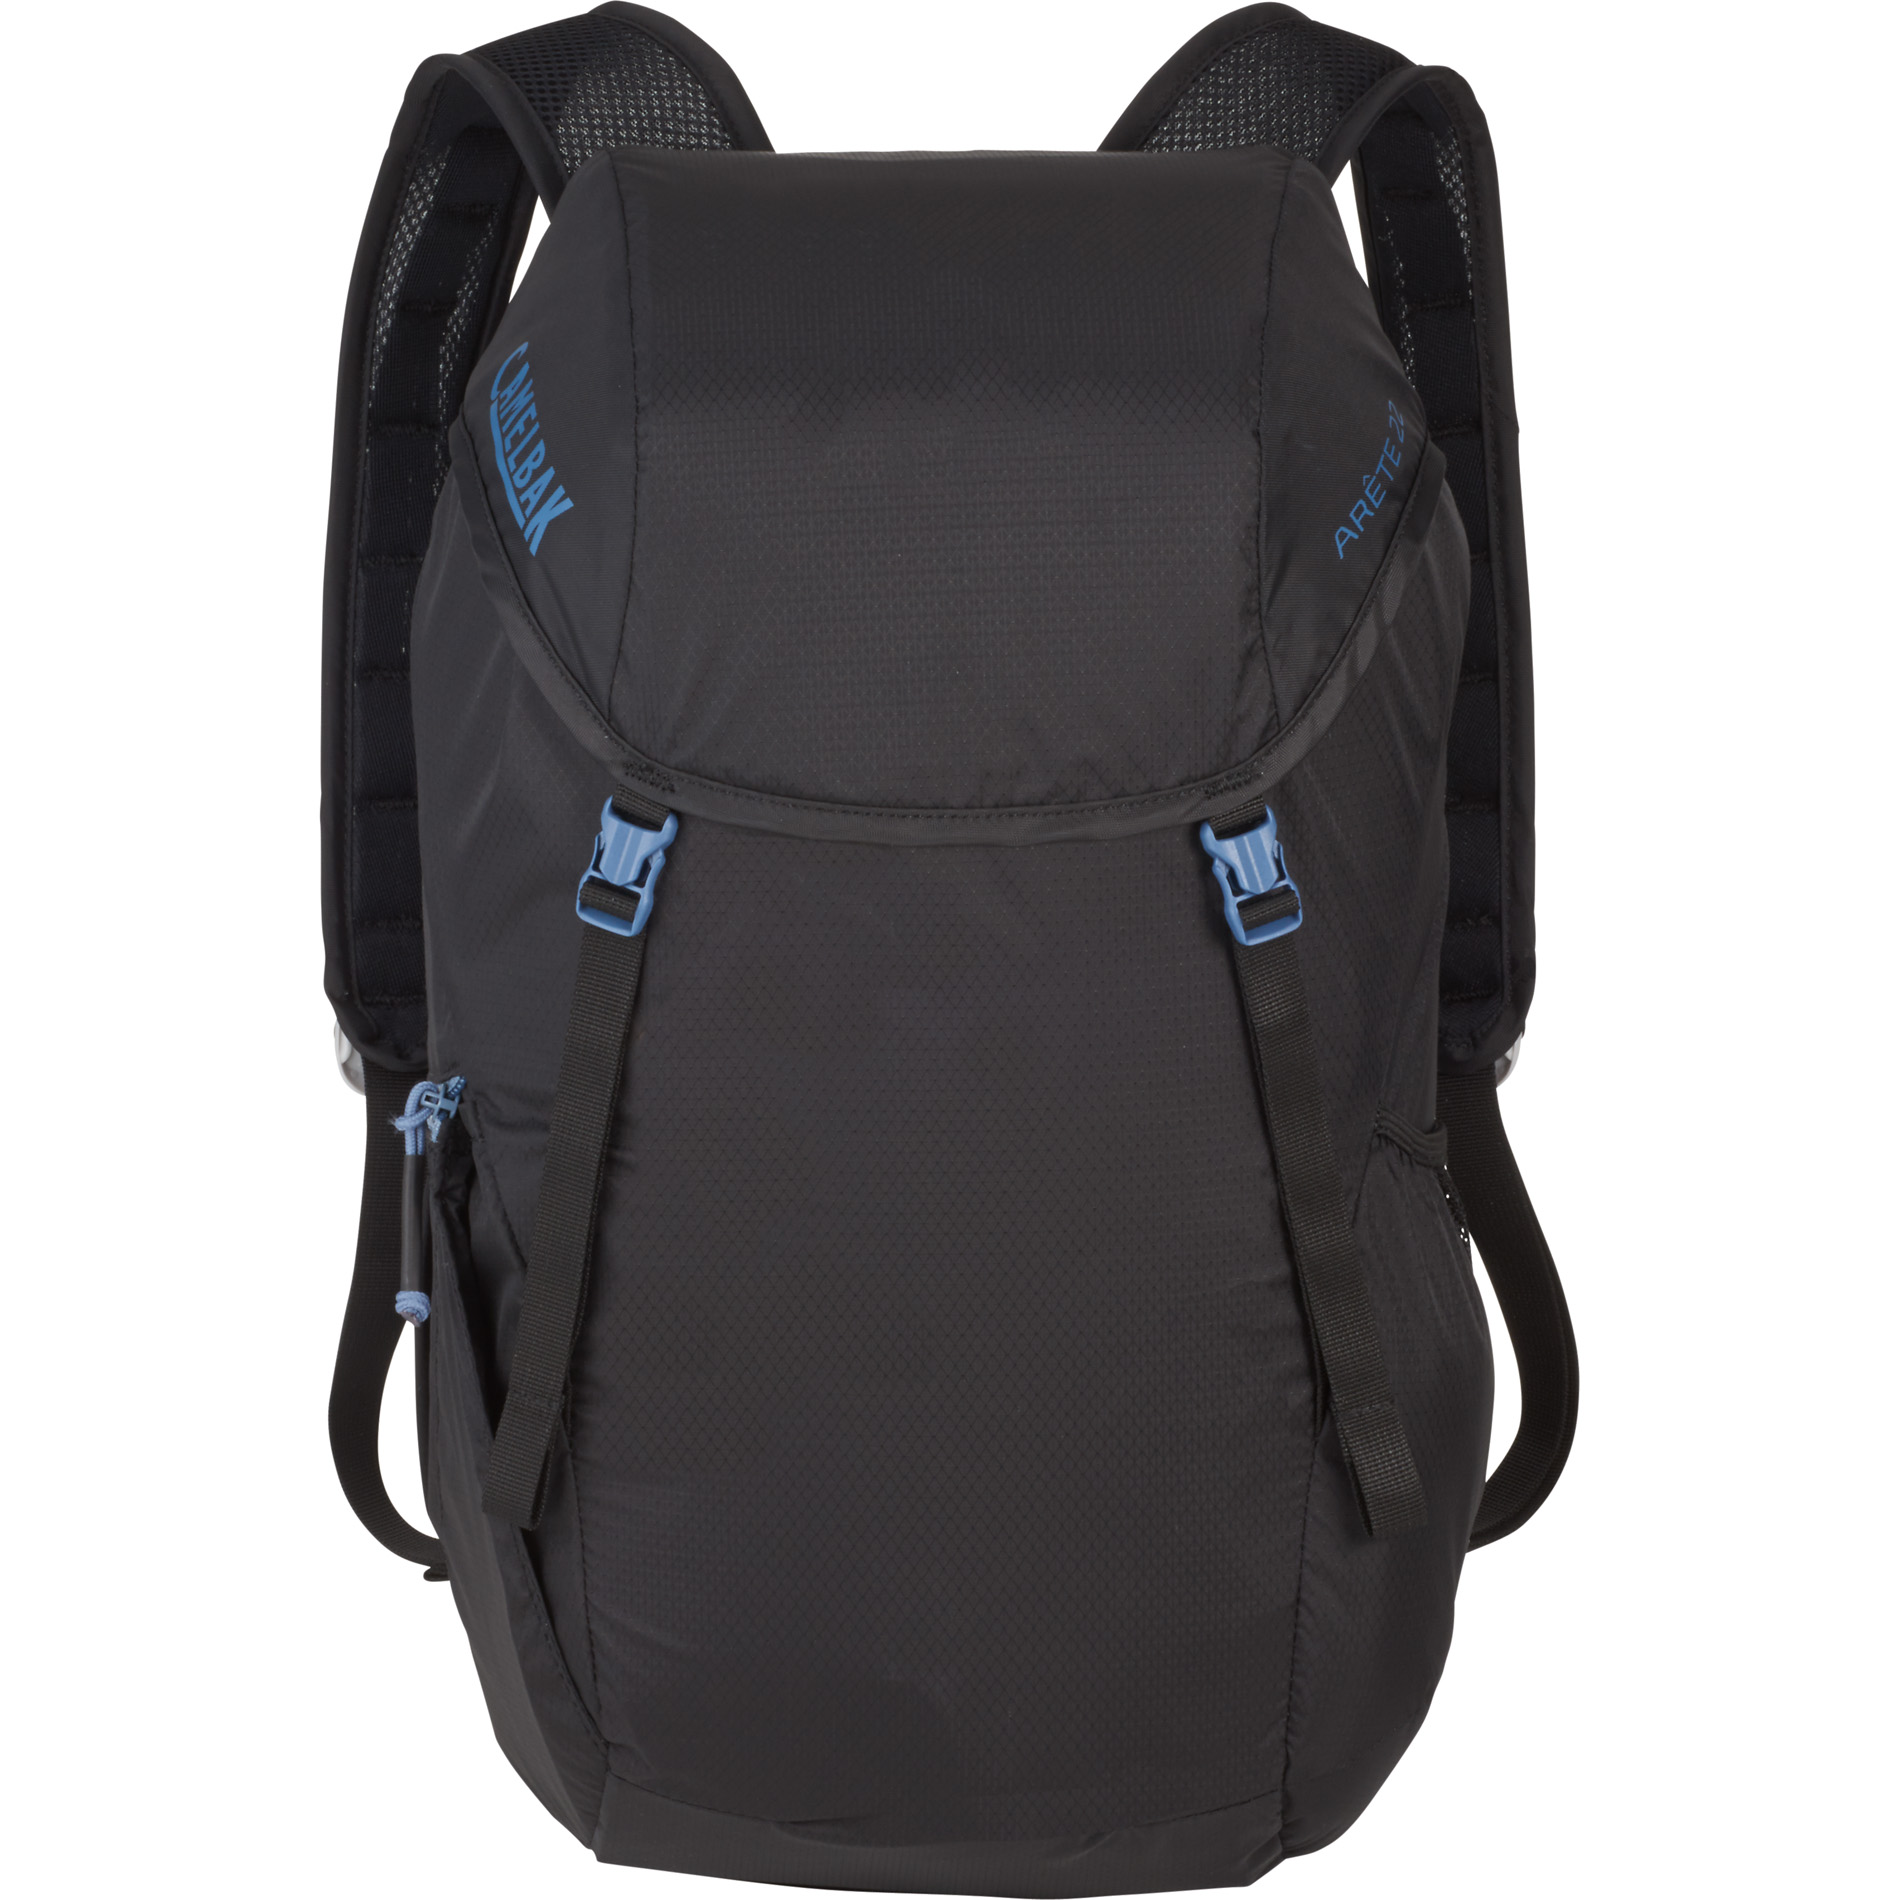 CamelBak 1627-52 - Arete 22L Backpack